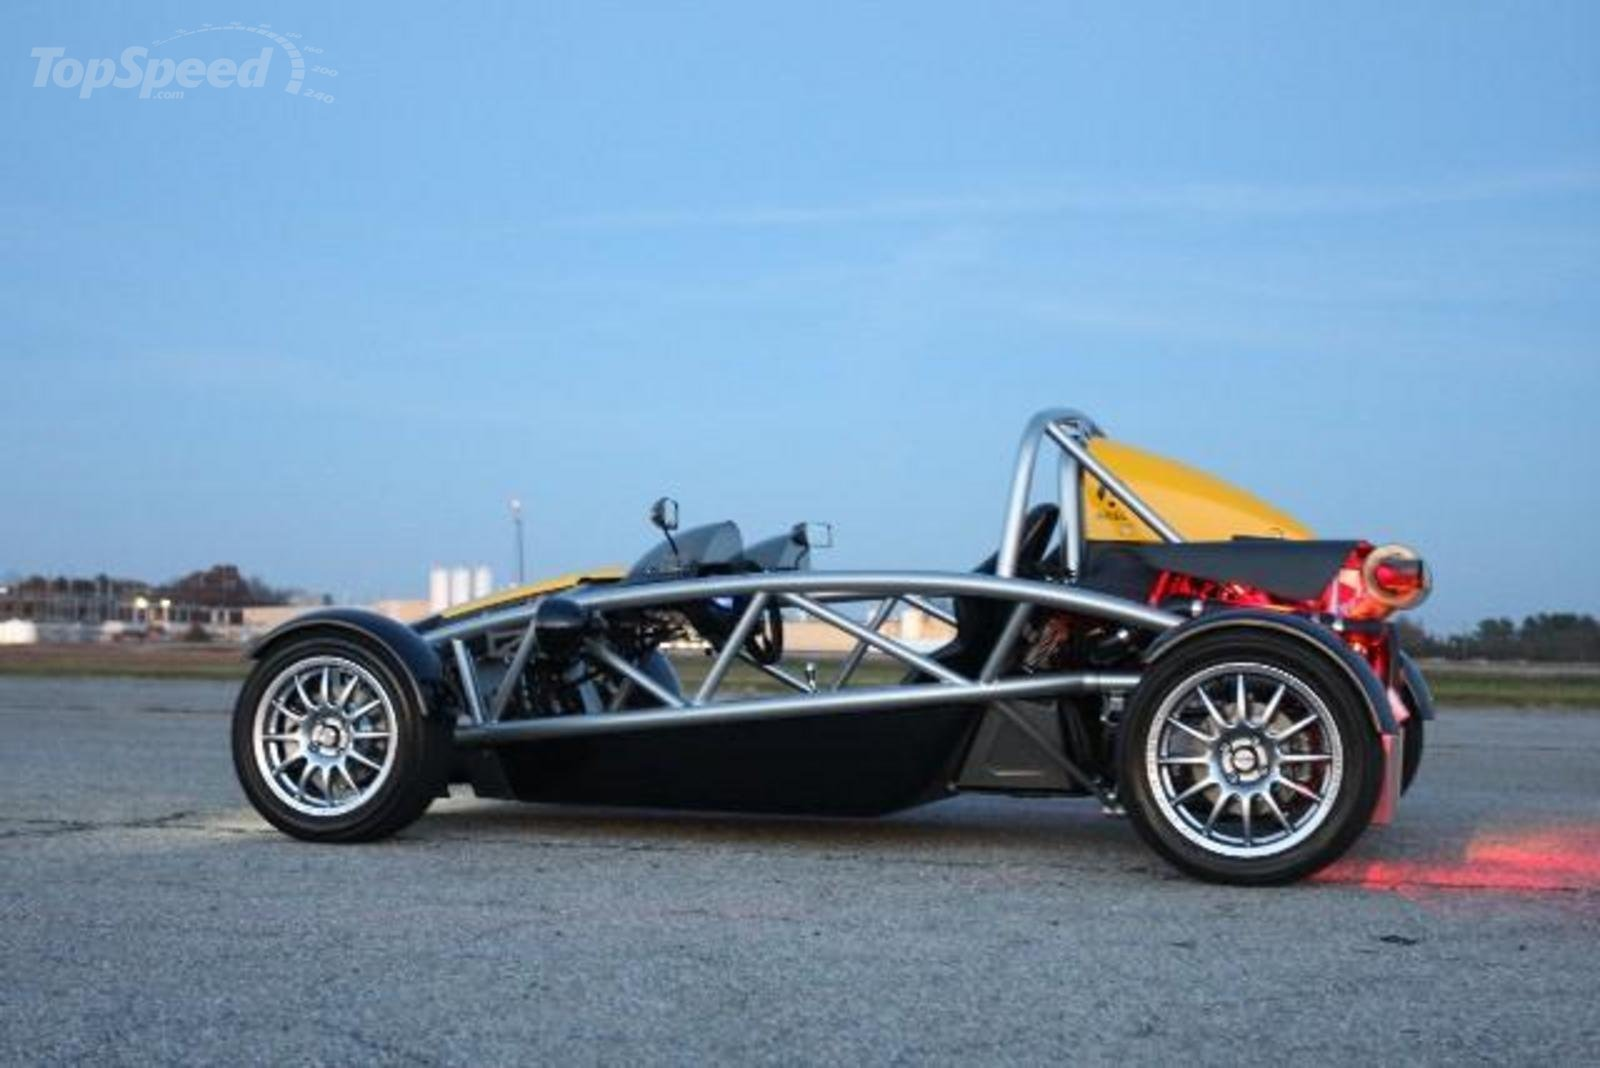 ddm works tunes up ariel atom adds turbocharged engine to existing supercharged engine news. Black Bedroom Furniture Sets. Home Design Ideas